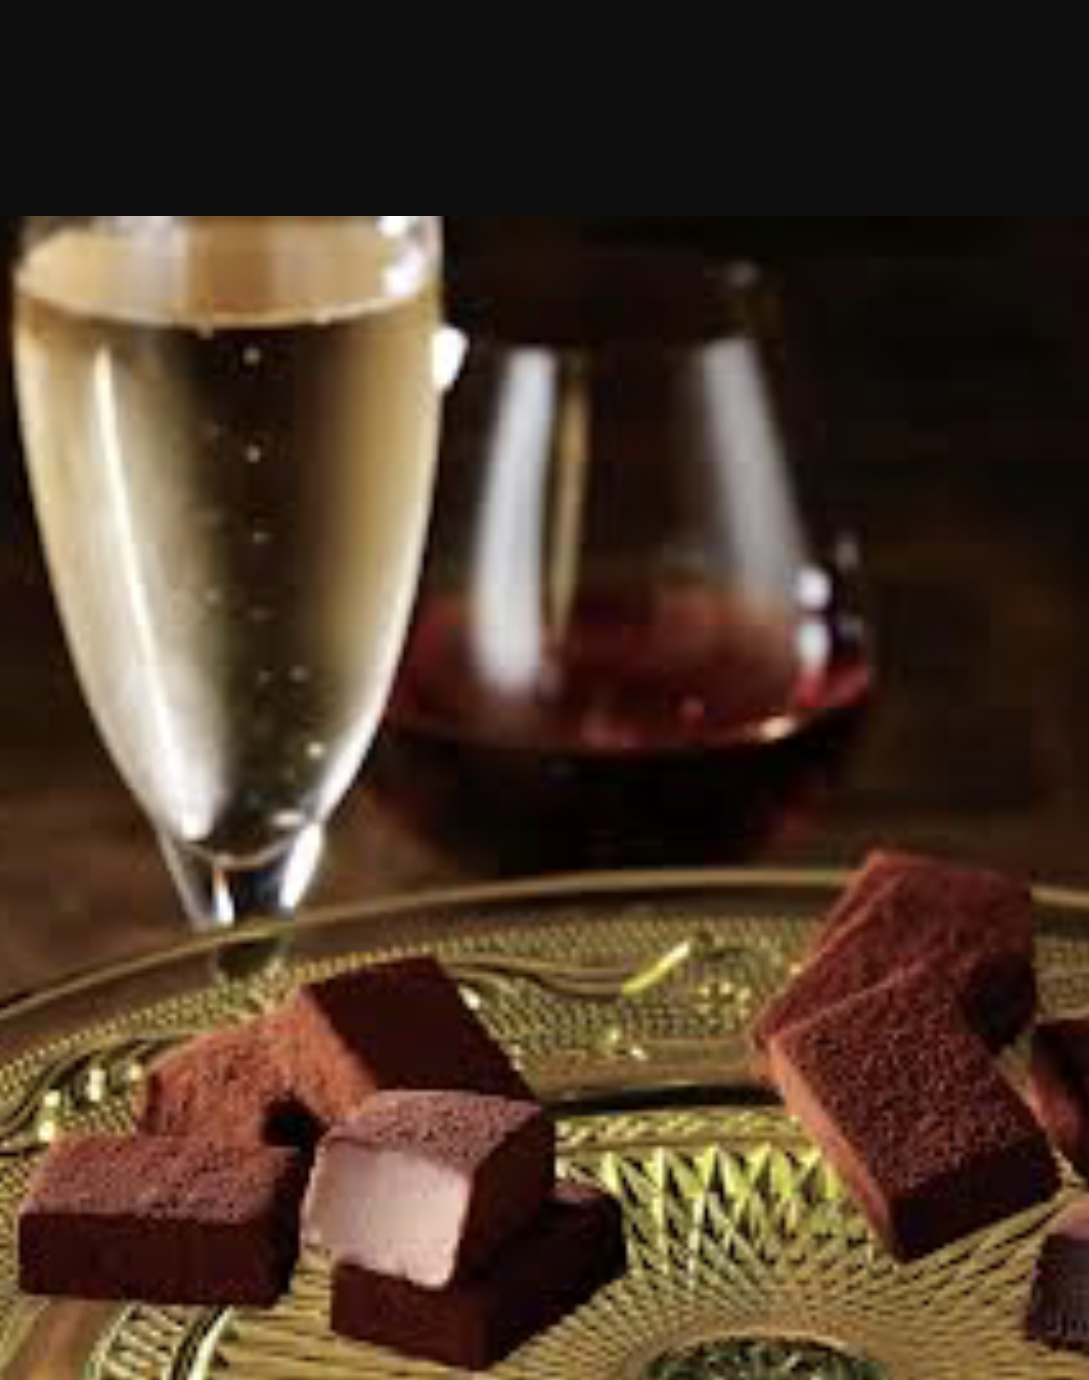 Toronto Wine Event: Champagne and Chocolate – Yes Please!  by Liz Palmer